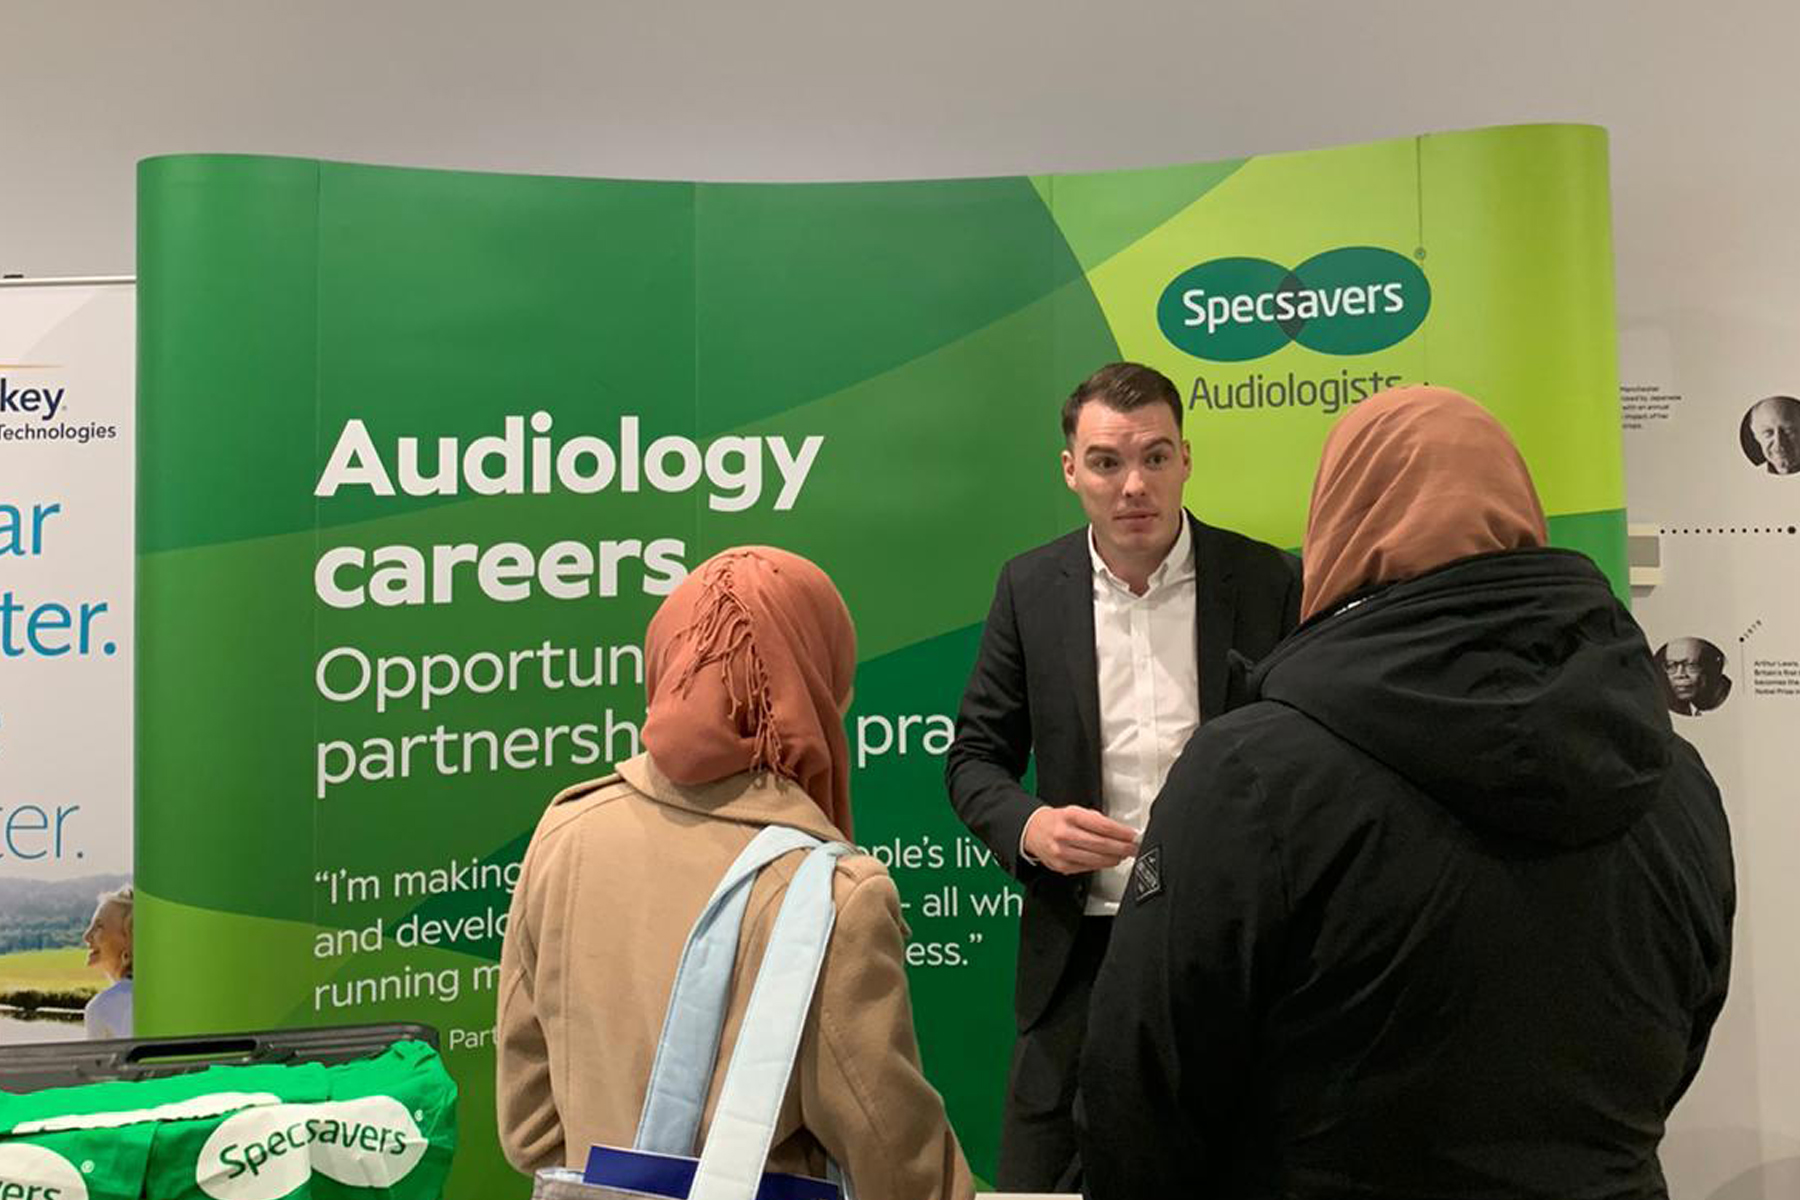 Specsavers wants to hear from talented audiology graduates